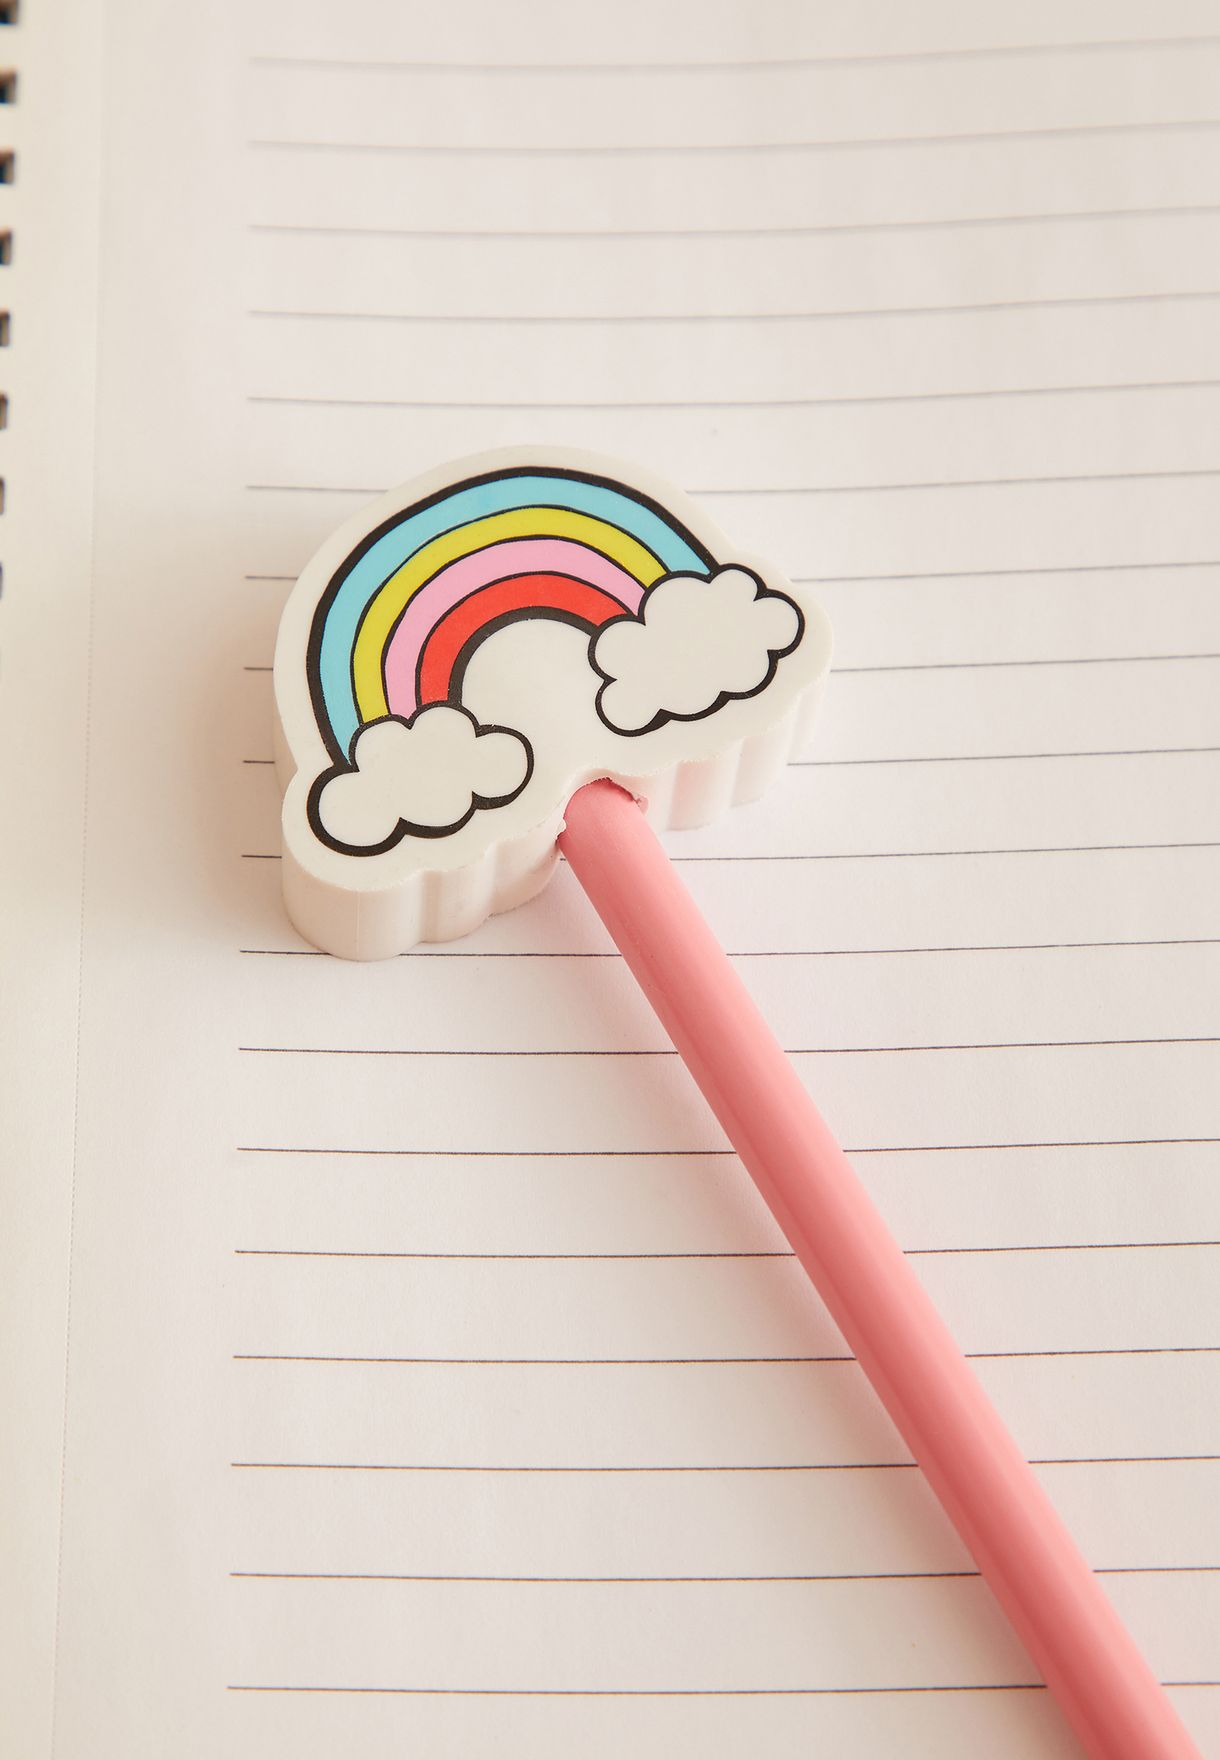 Pencil With Rainbow Eraser Topper